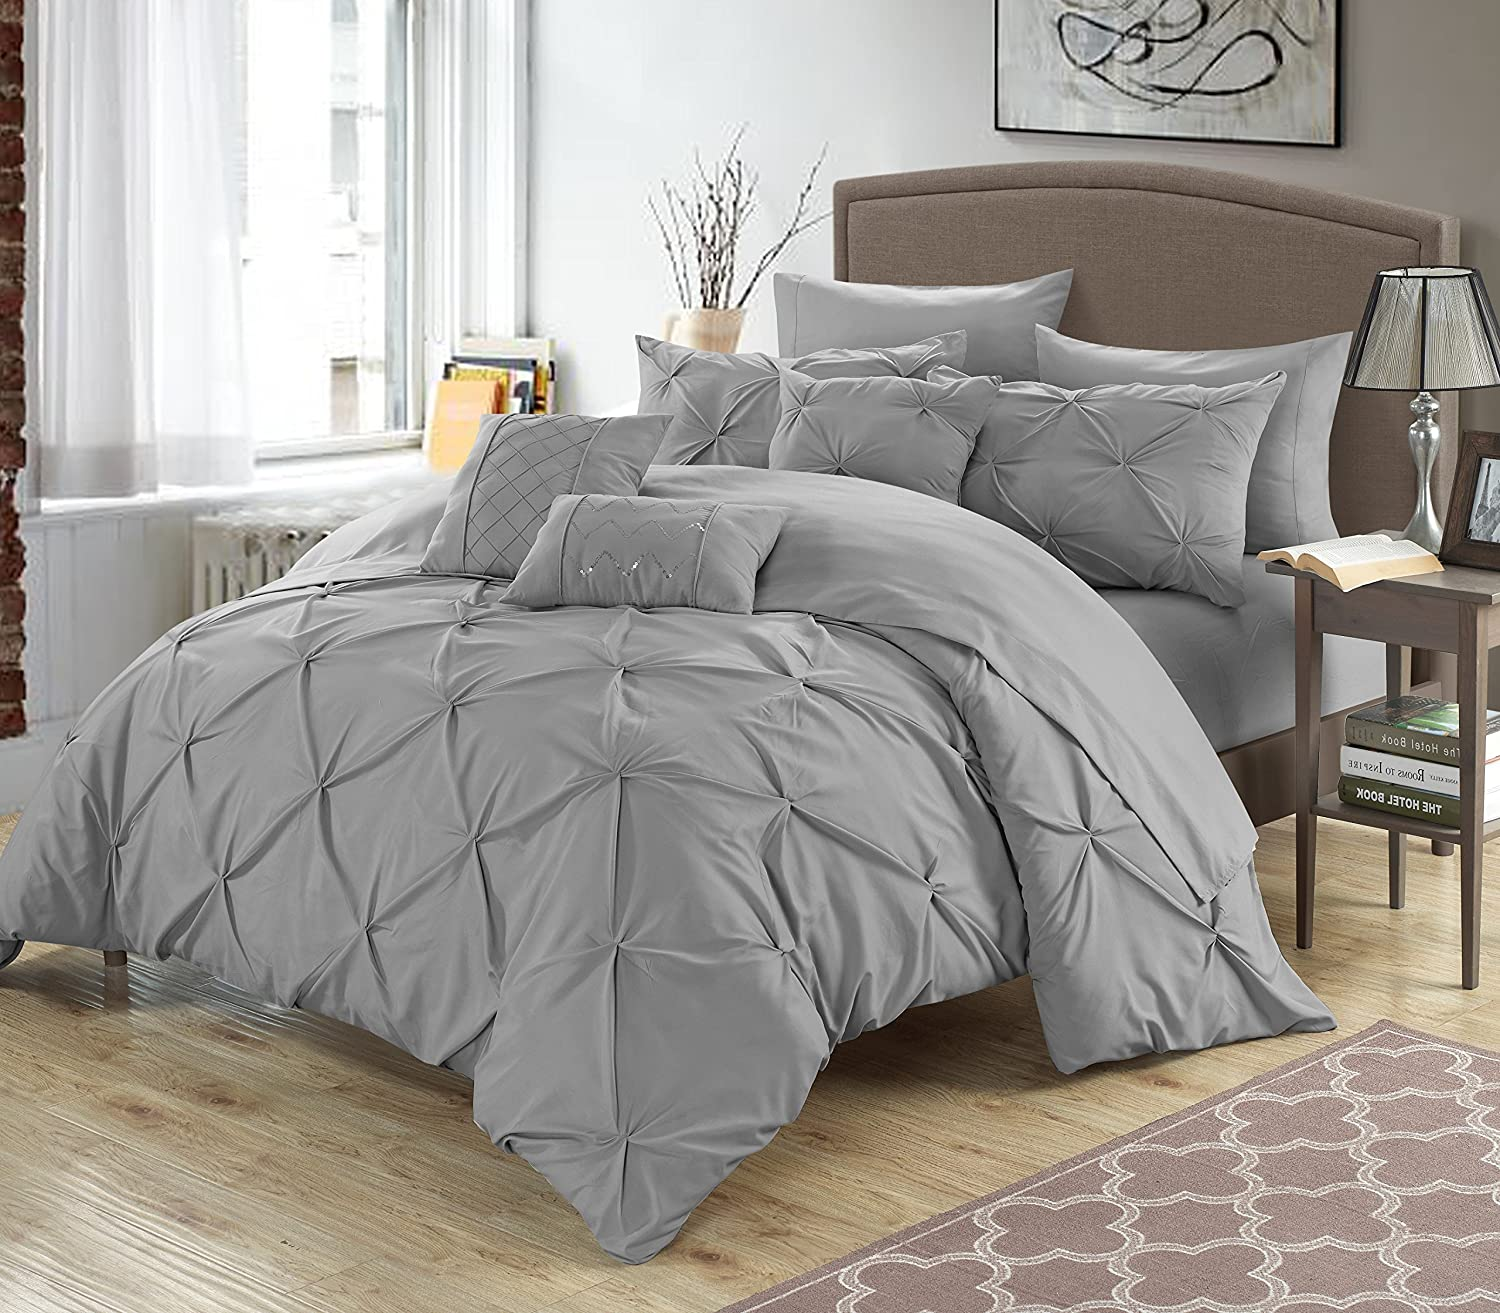 Chic Home 8 Piece Zita Pinch Pleated, Ruffled and Pleated Complete Twin Bed in a Bag Comforter Set Silver Sheets Set and Decorative Pillows Included